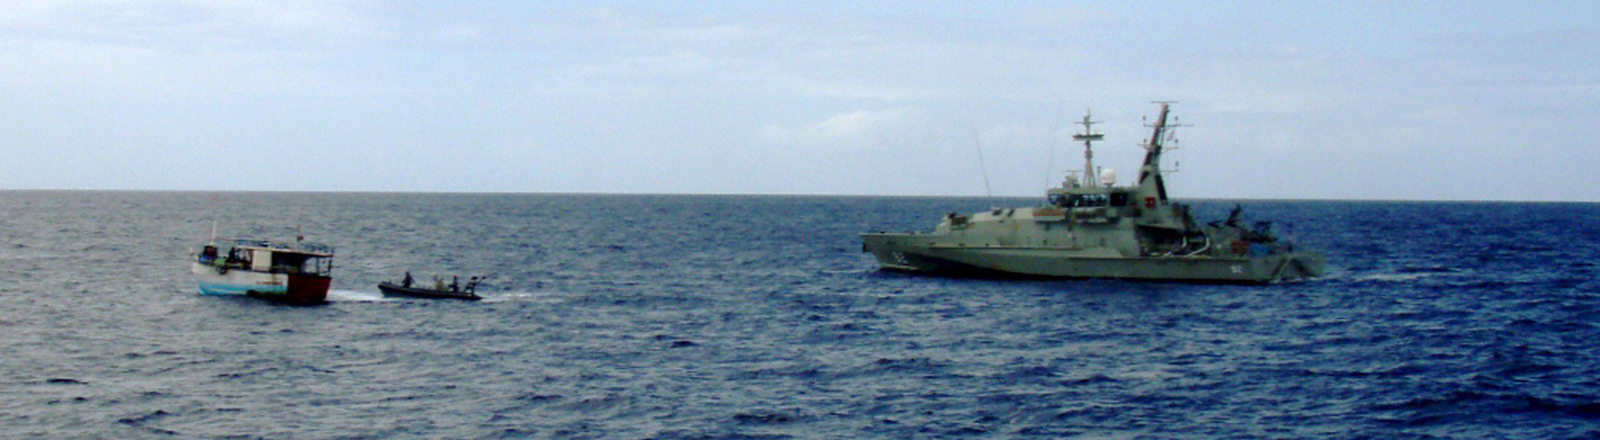 A handout photograph supplied by the Australian Department of Home Affairs on 22 April 2009 showing a boat intercepted by the Border Protection Command off the West Australia coast on 22 April 2009. Australian Navy ship HMAS Wollongong (R) intercepted the vessel approximately 47 nautical miles southwest of Barrow Island and discovered 32 people on board, all Sri Lankan men.